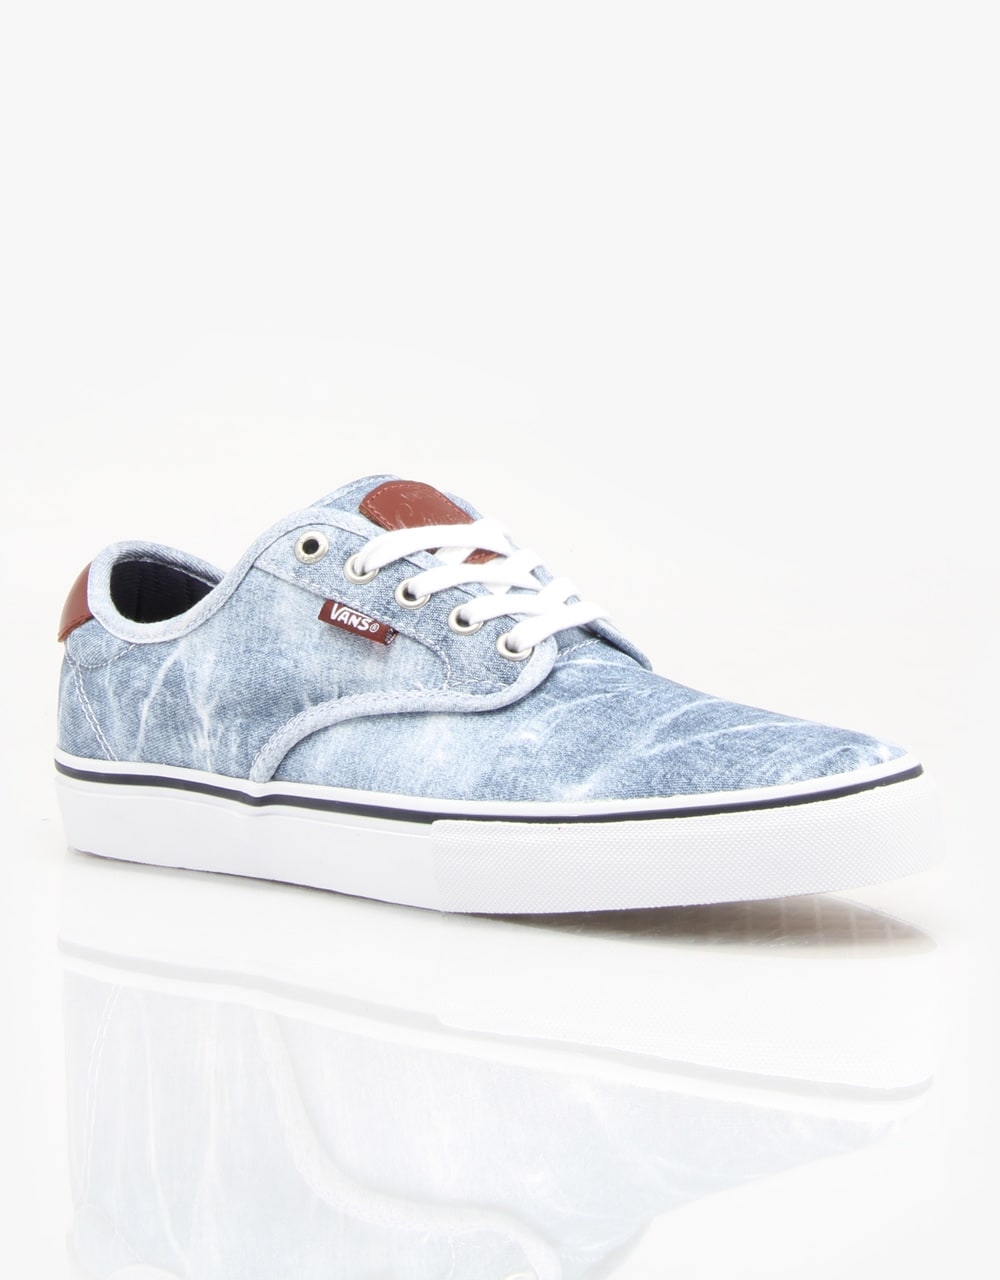 470a5db9d07d Vans Chima Ferguson Pro Skate Shoes - (Acid Wash) Light Navy